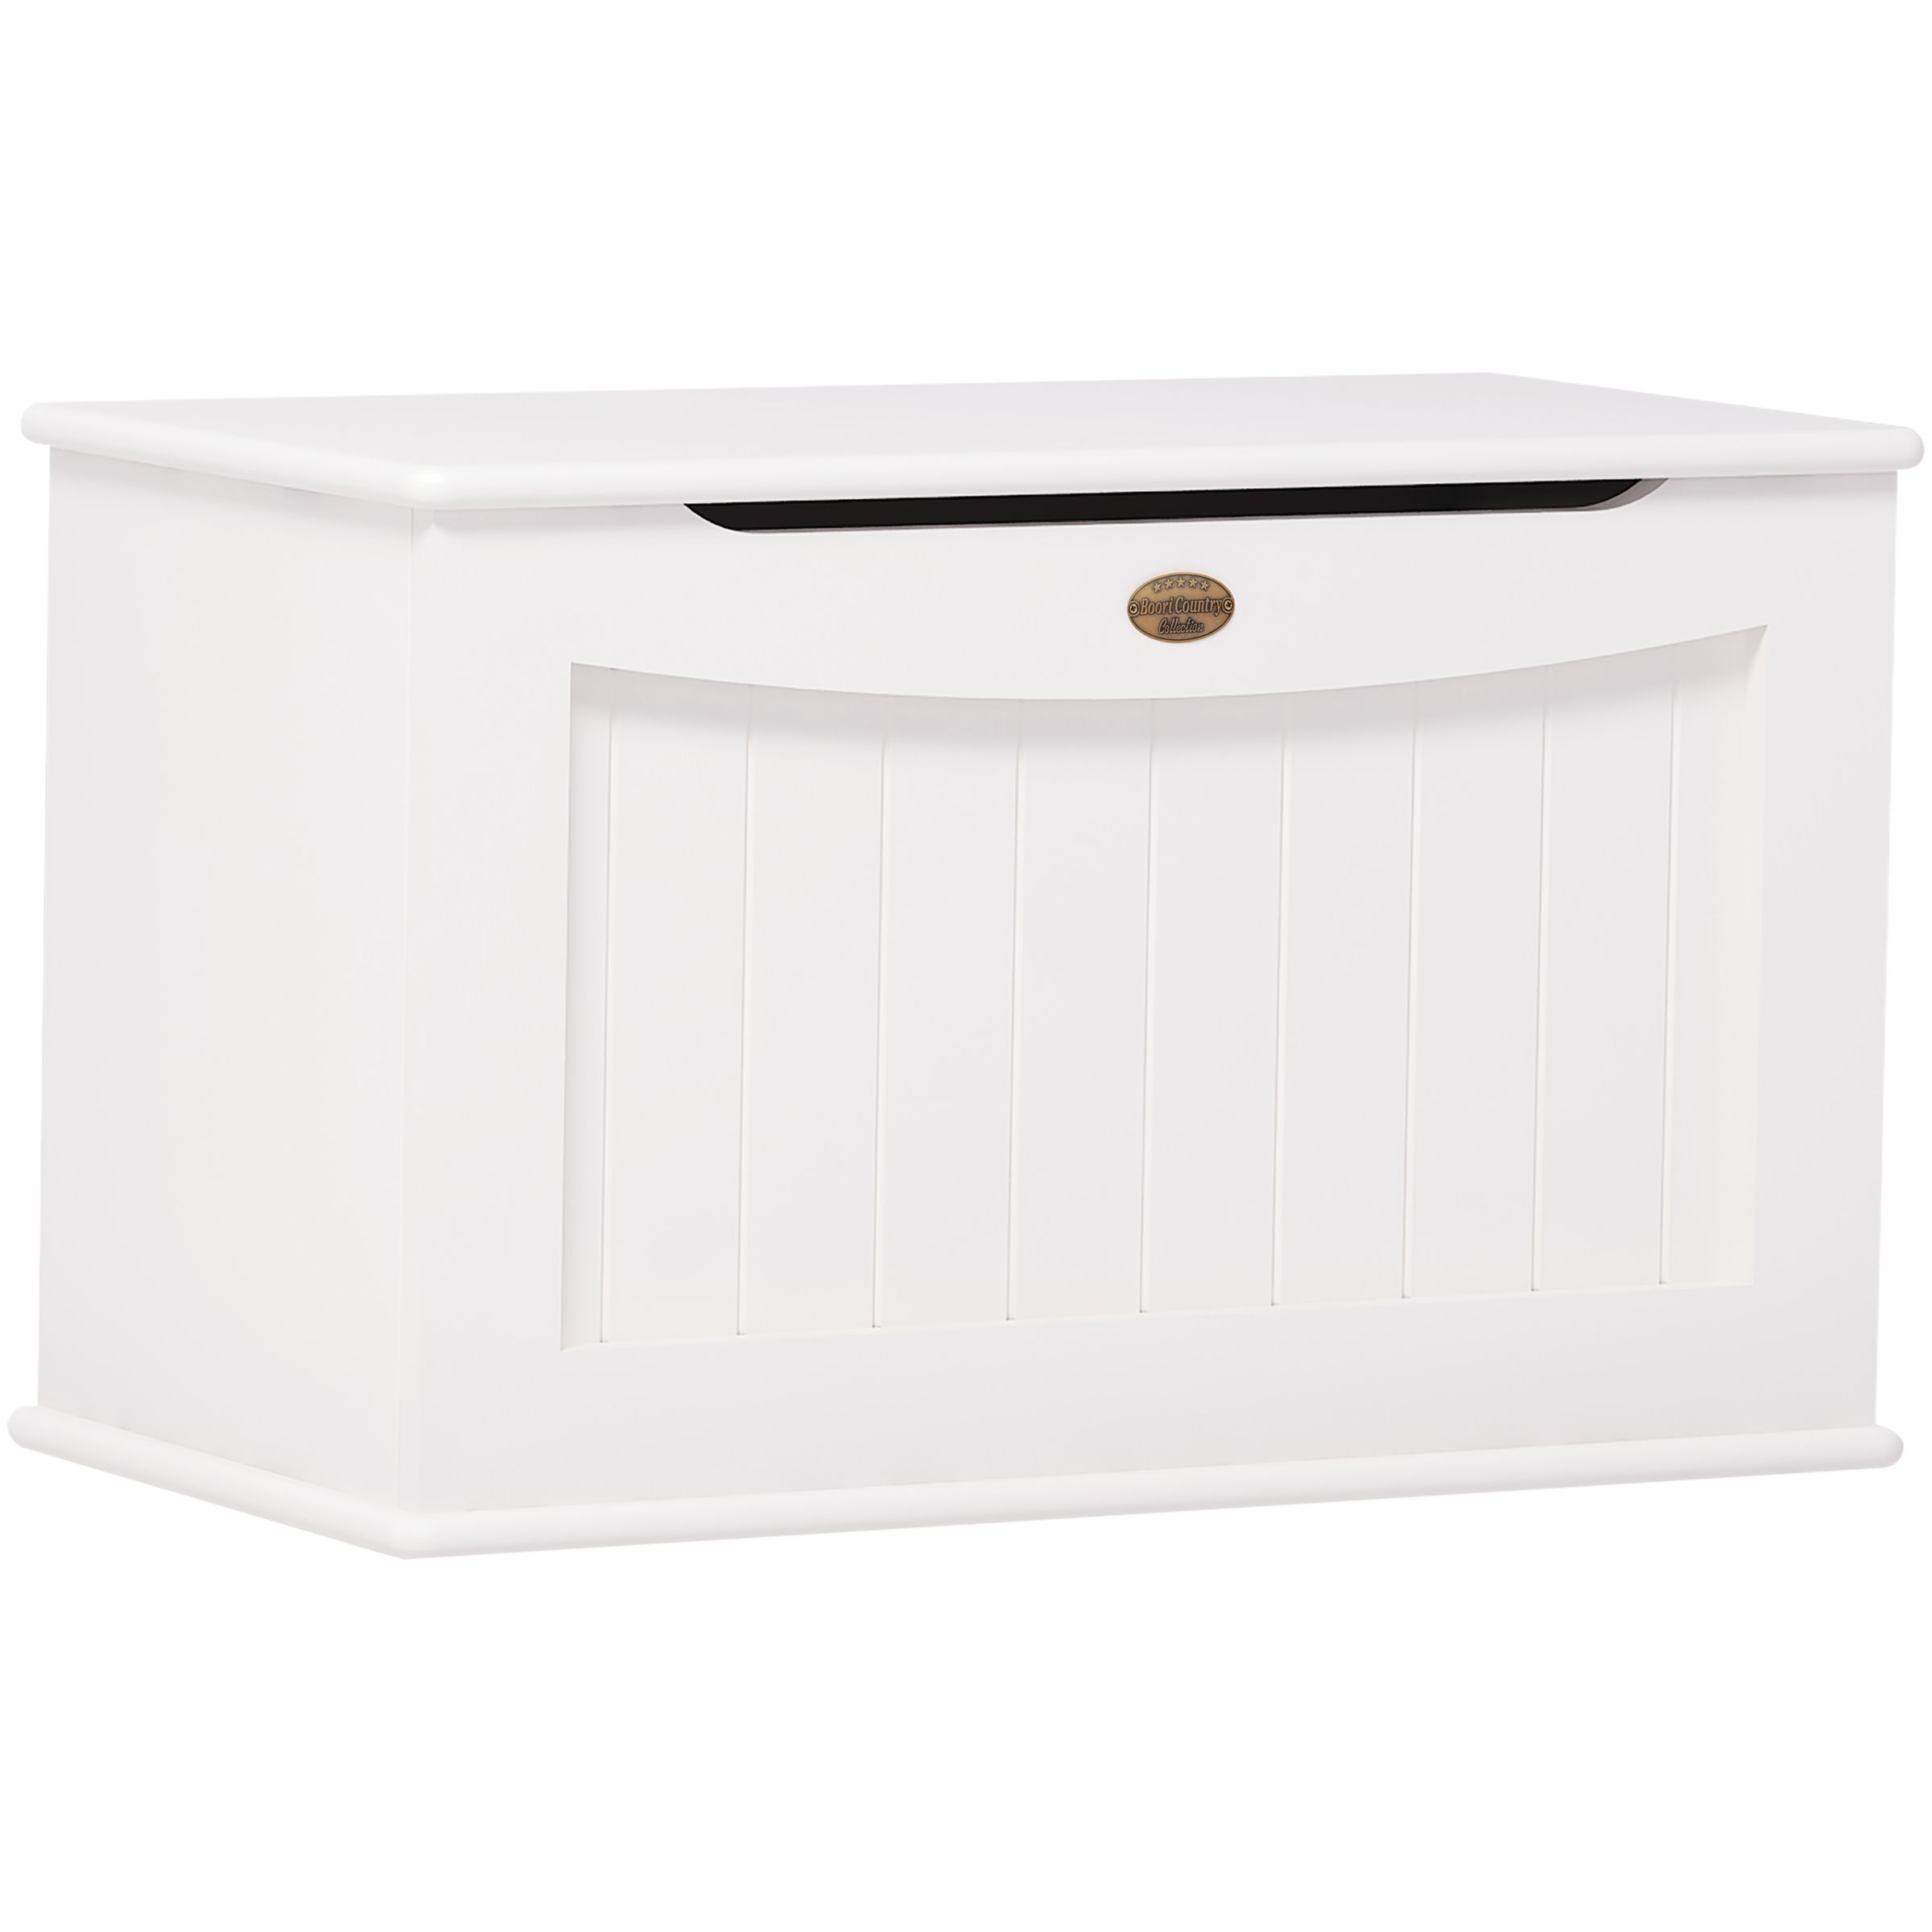 Boori Boori Toy Box, White